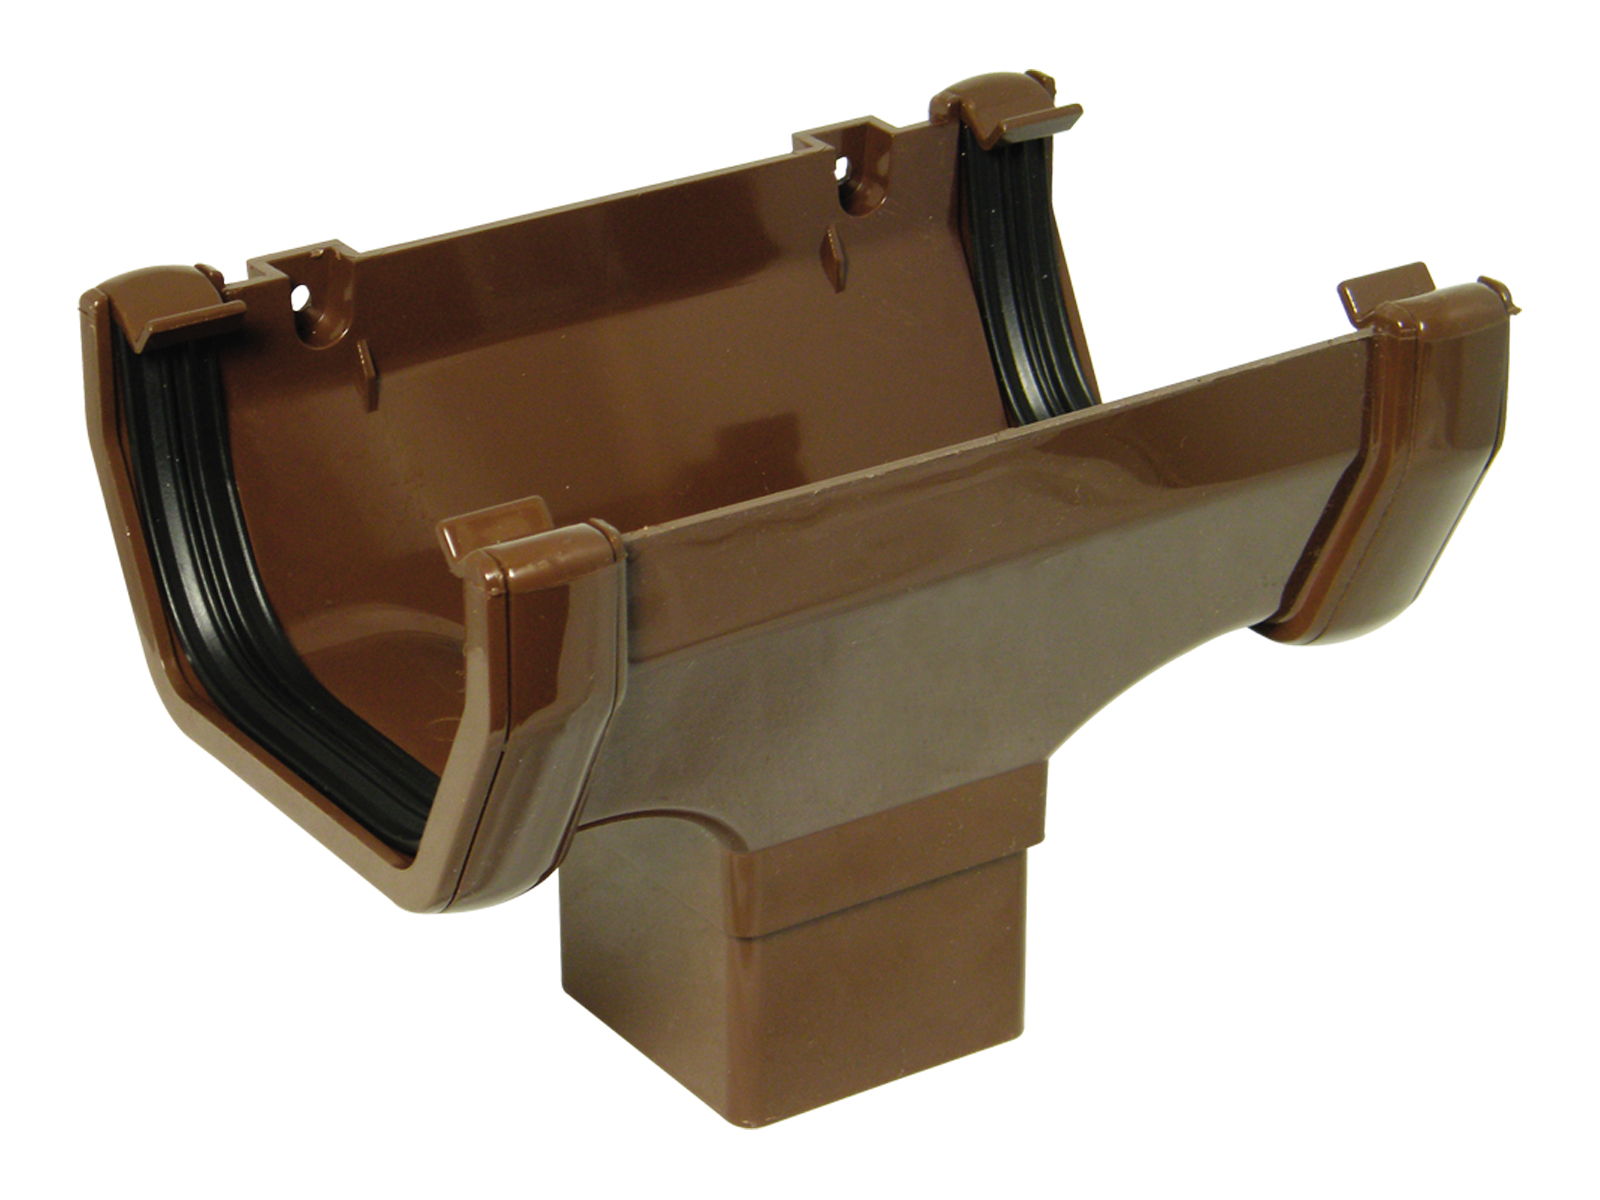 FLOPLAST ROS1BR SQUARE LINE GUTTER - RUNNING OUTLET - BROWN